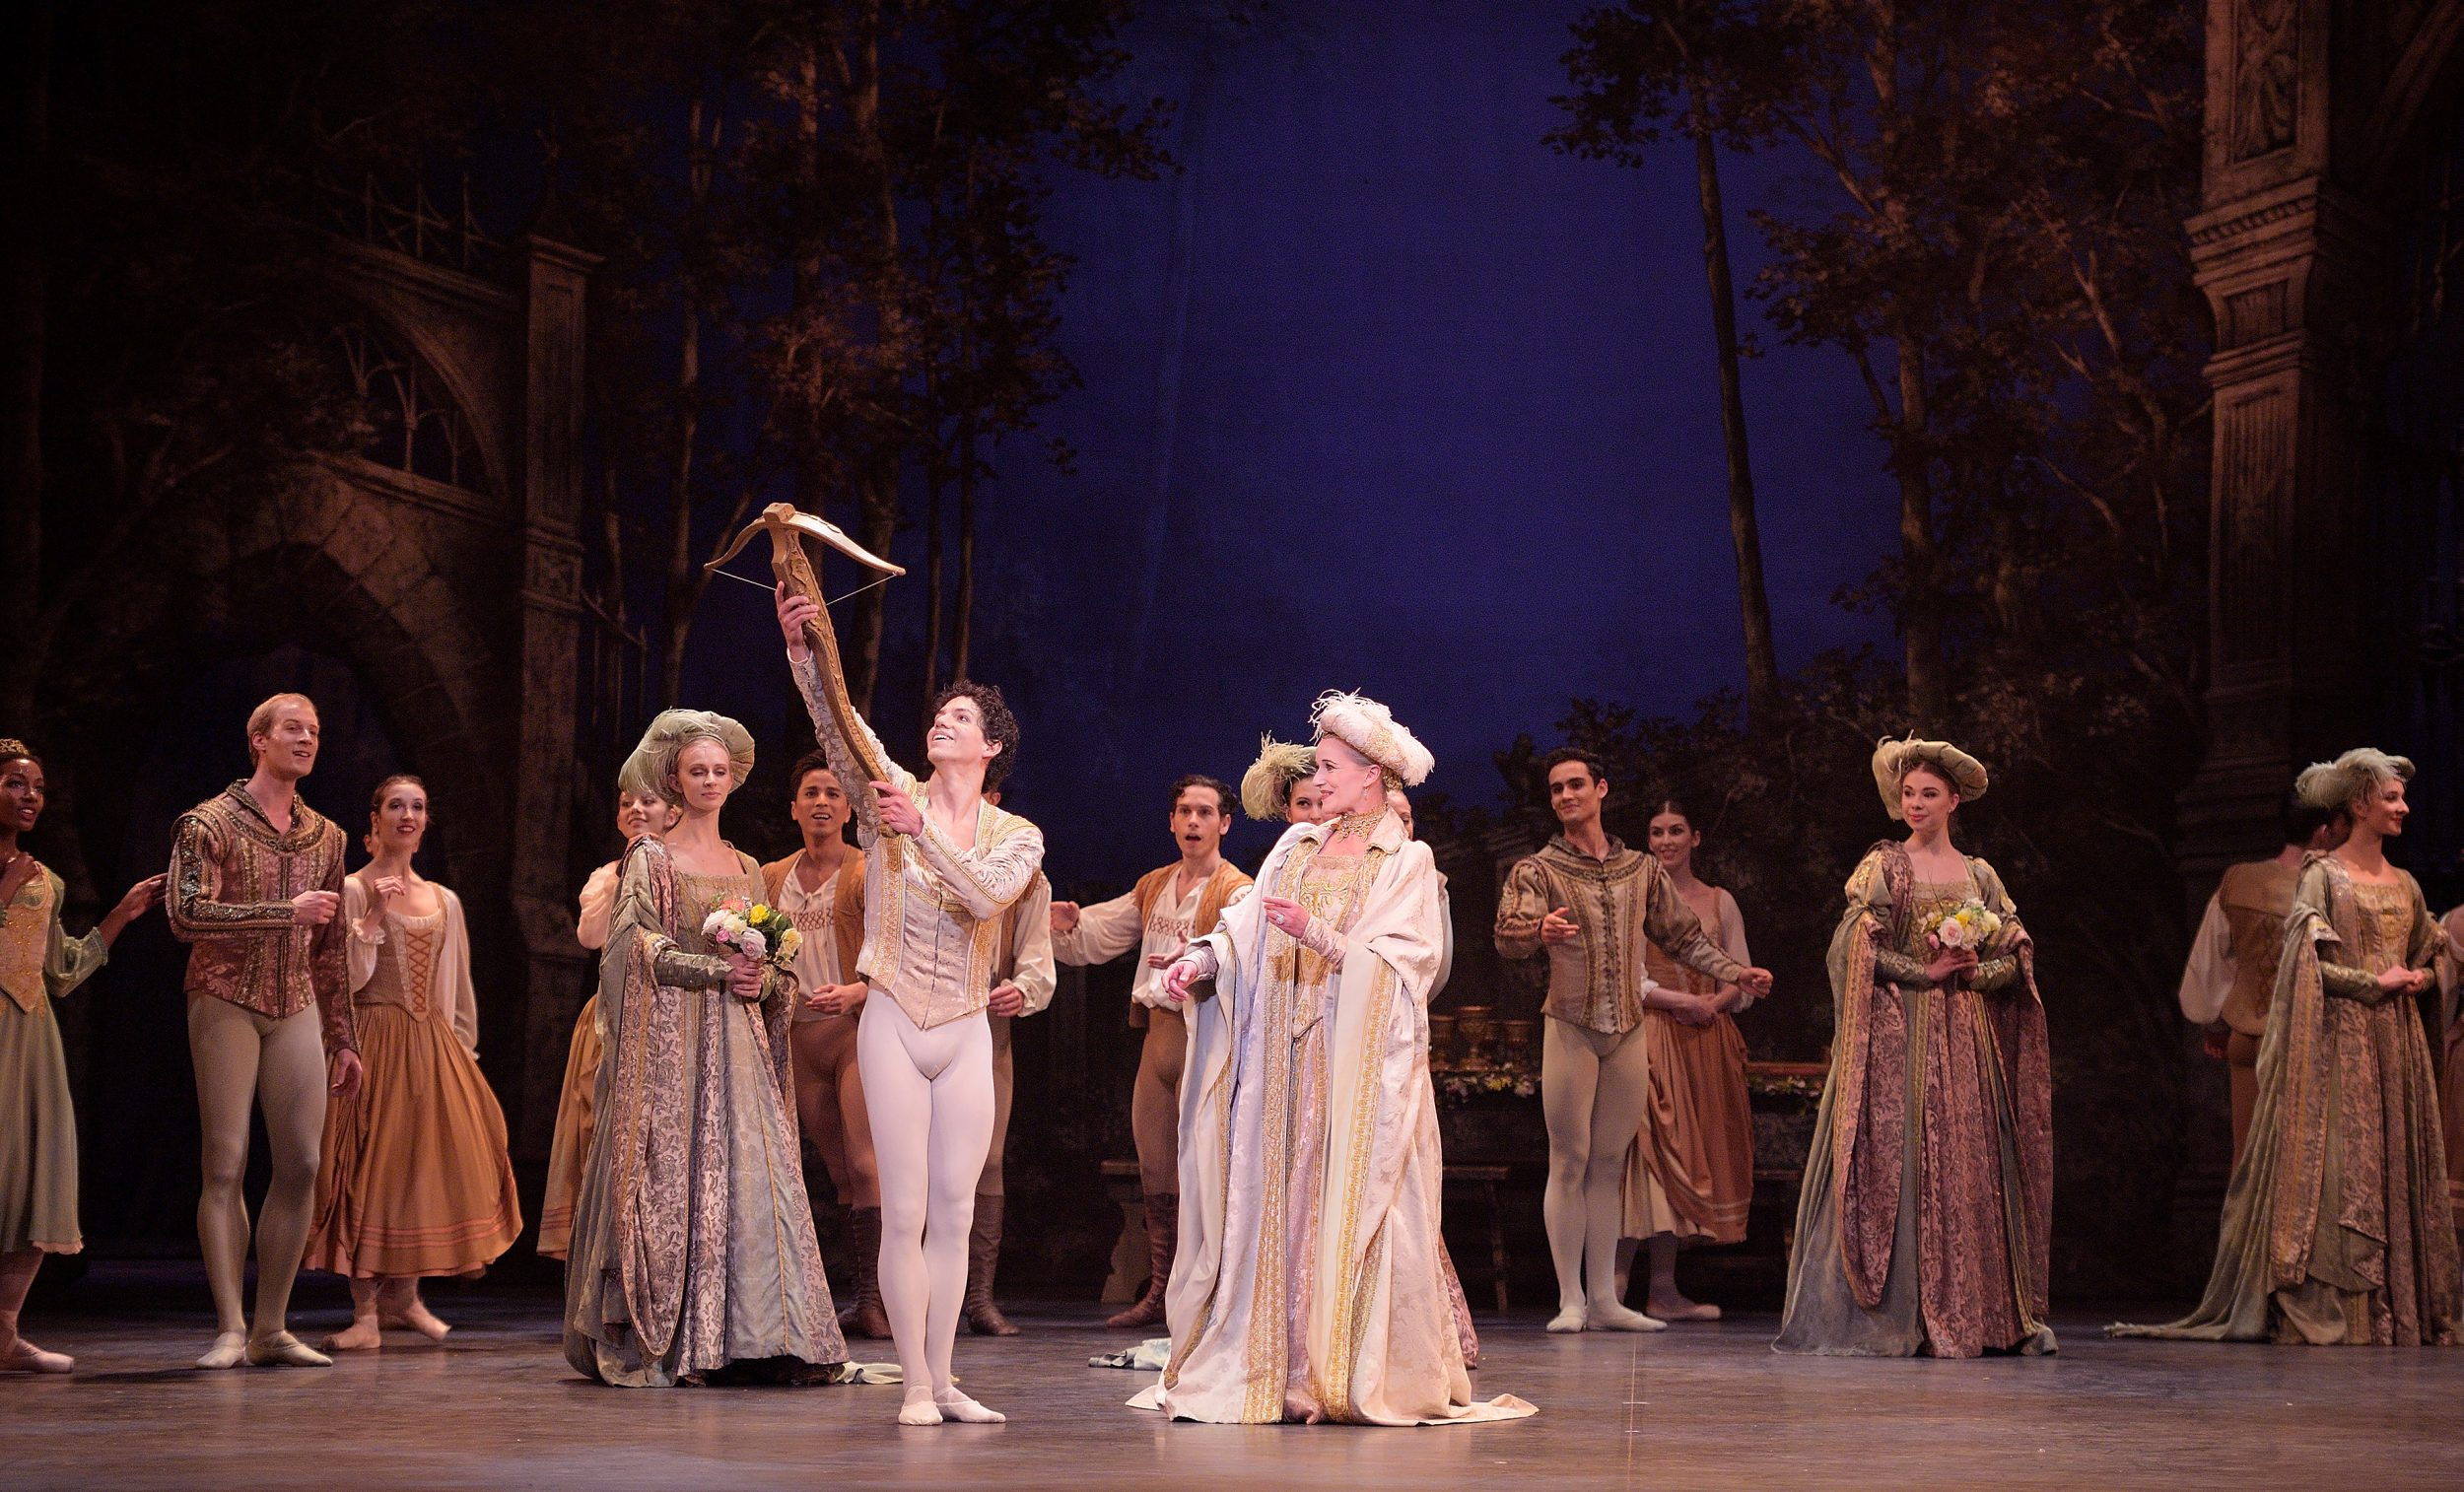 Isaac-Hernandez-and-Jane-Haworth-in-Swan-Lake-(c)-Laurent-Liotardo_WEB